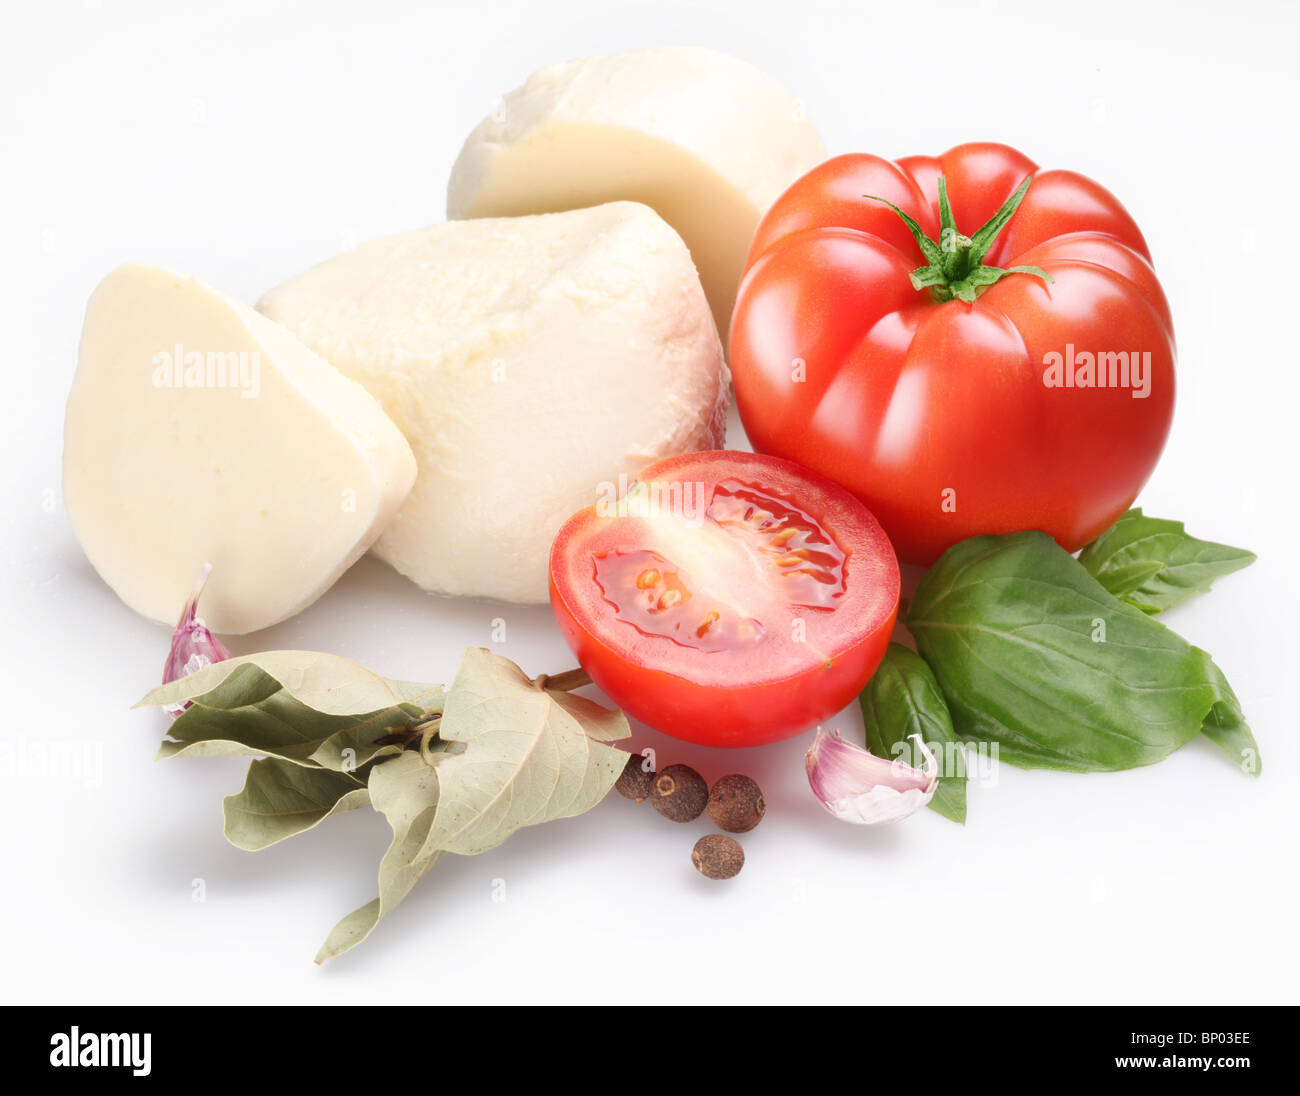 Ingredients for making salad with mozzarella and tomatoes on a white background. - Stock Image